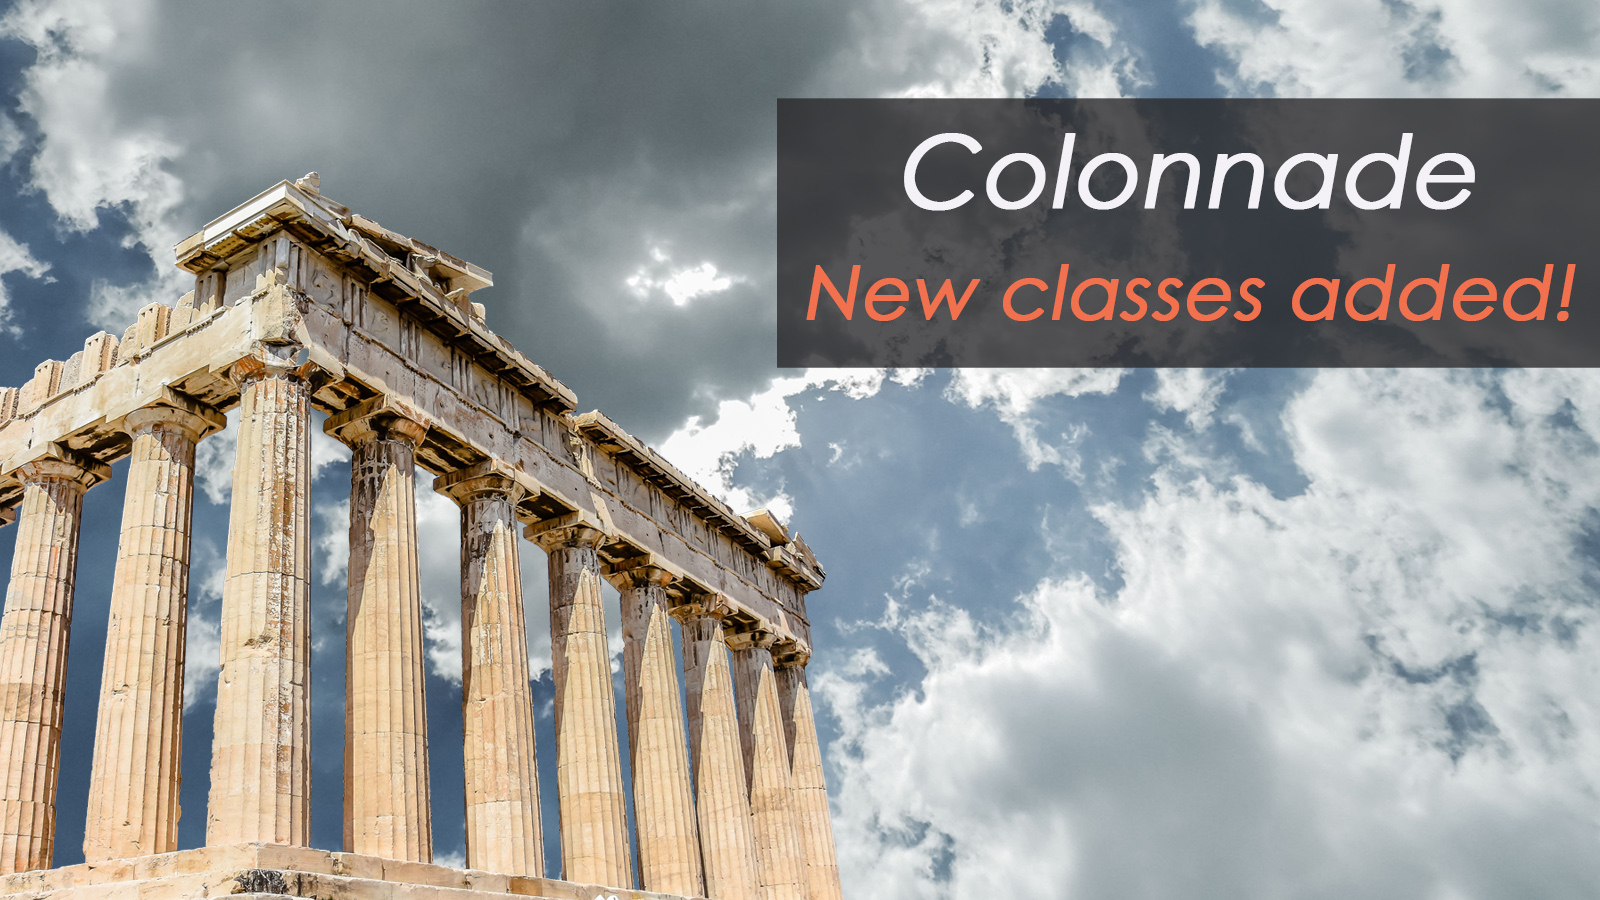 Enstoa Adds Two New Colonnade Courses: Agile for Leaders and Cost Management Principles for Capital Projects